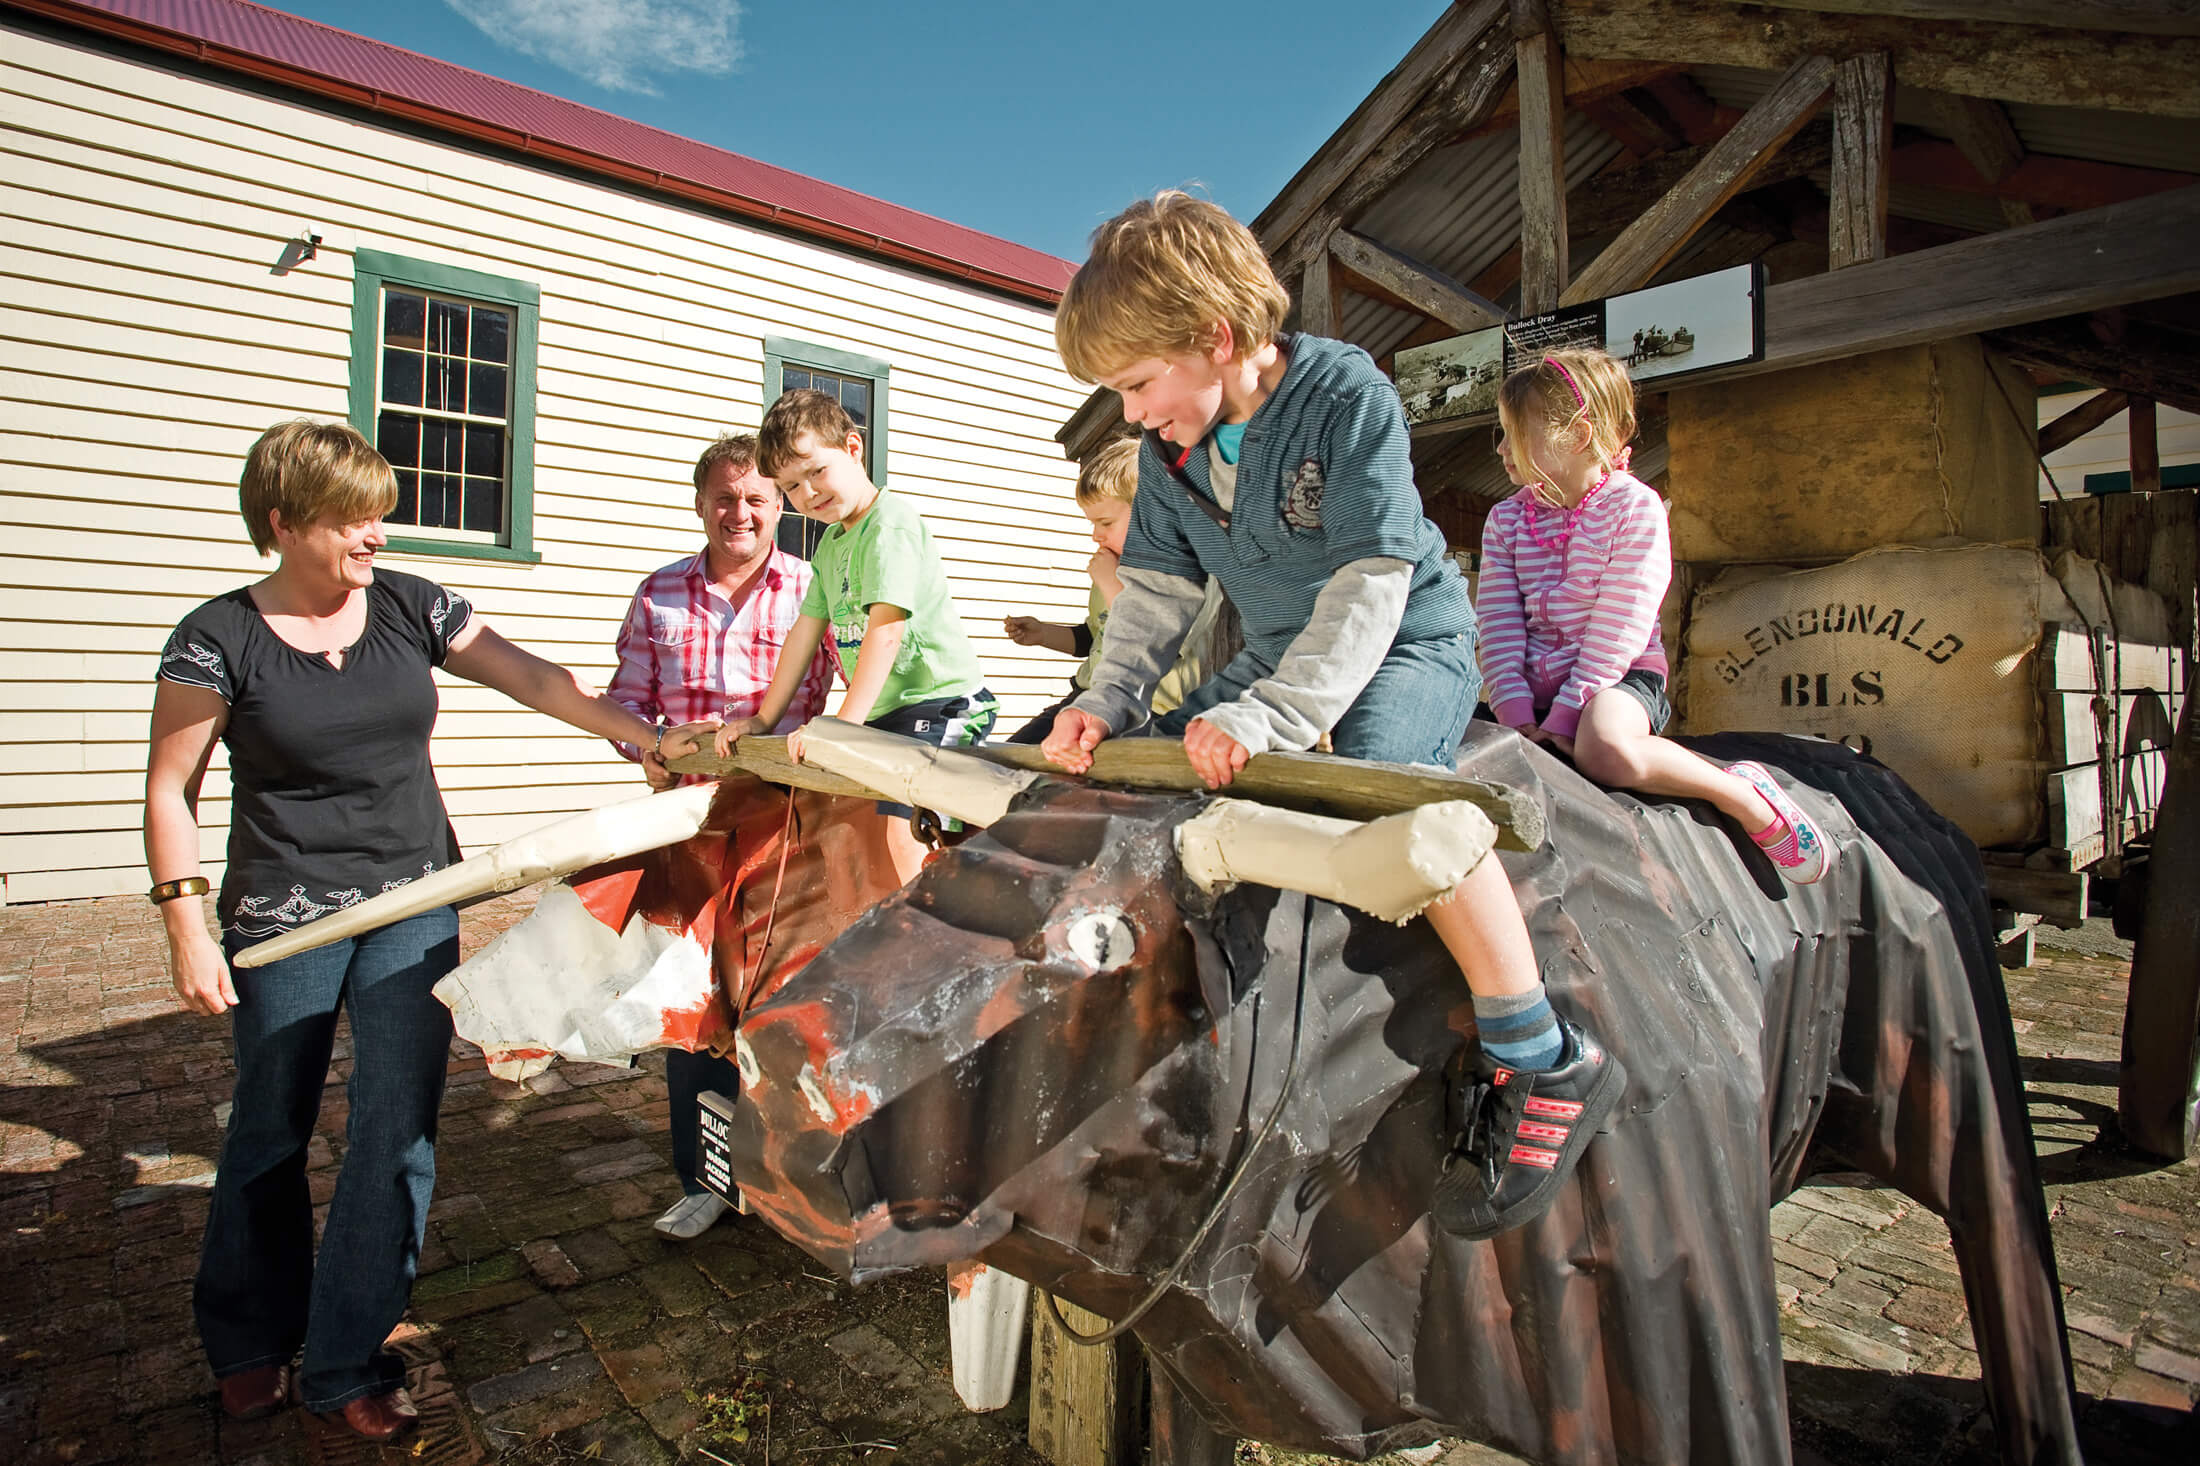 Kids having fun on corrugated iron bullocks outside The Wool Shed. The bullocks are pulling a wagon loaded with wool bales from the Glendonald farm. They were created by Masterton artist Warren Jackson. Behind them is the old Glendonald wool shed that was trucked into Masterton to form part of the museum.